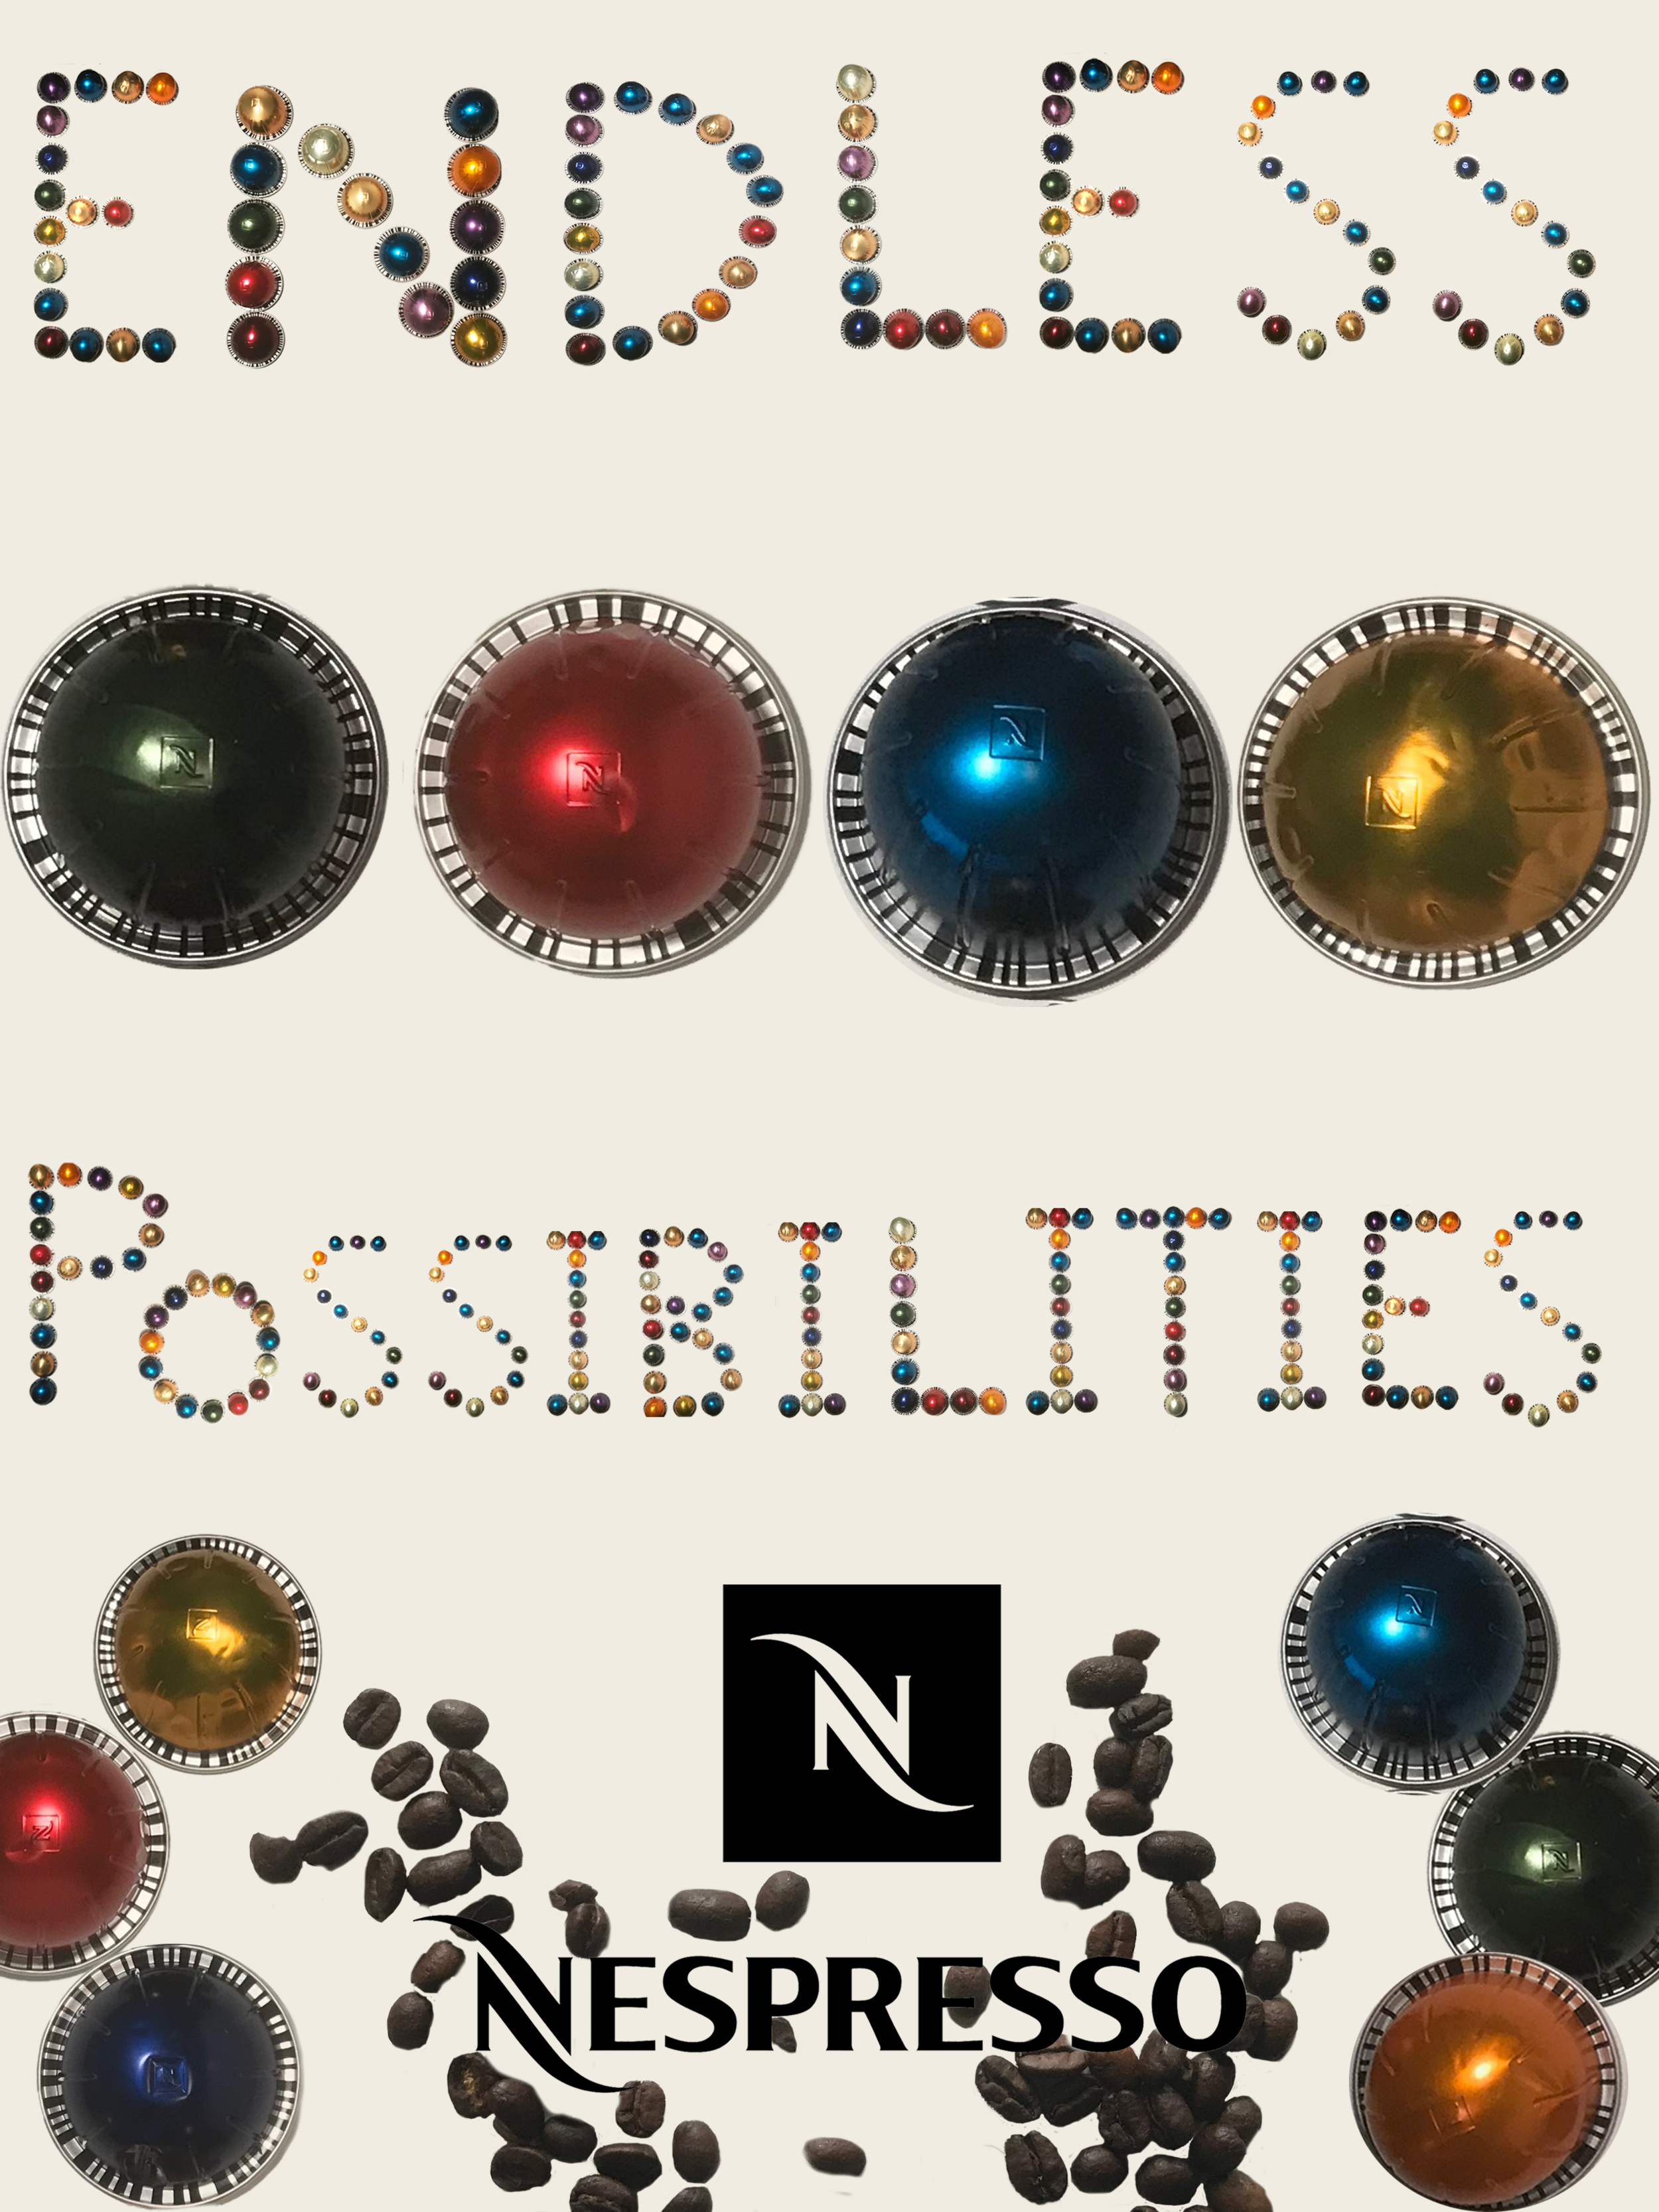 Nespresso Poster_1.png